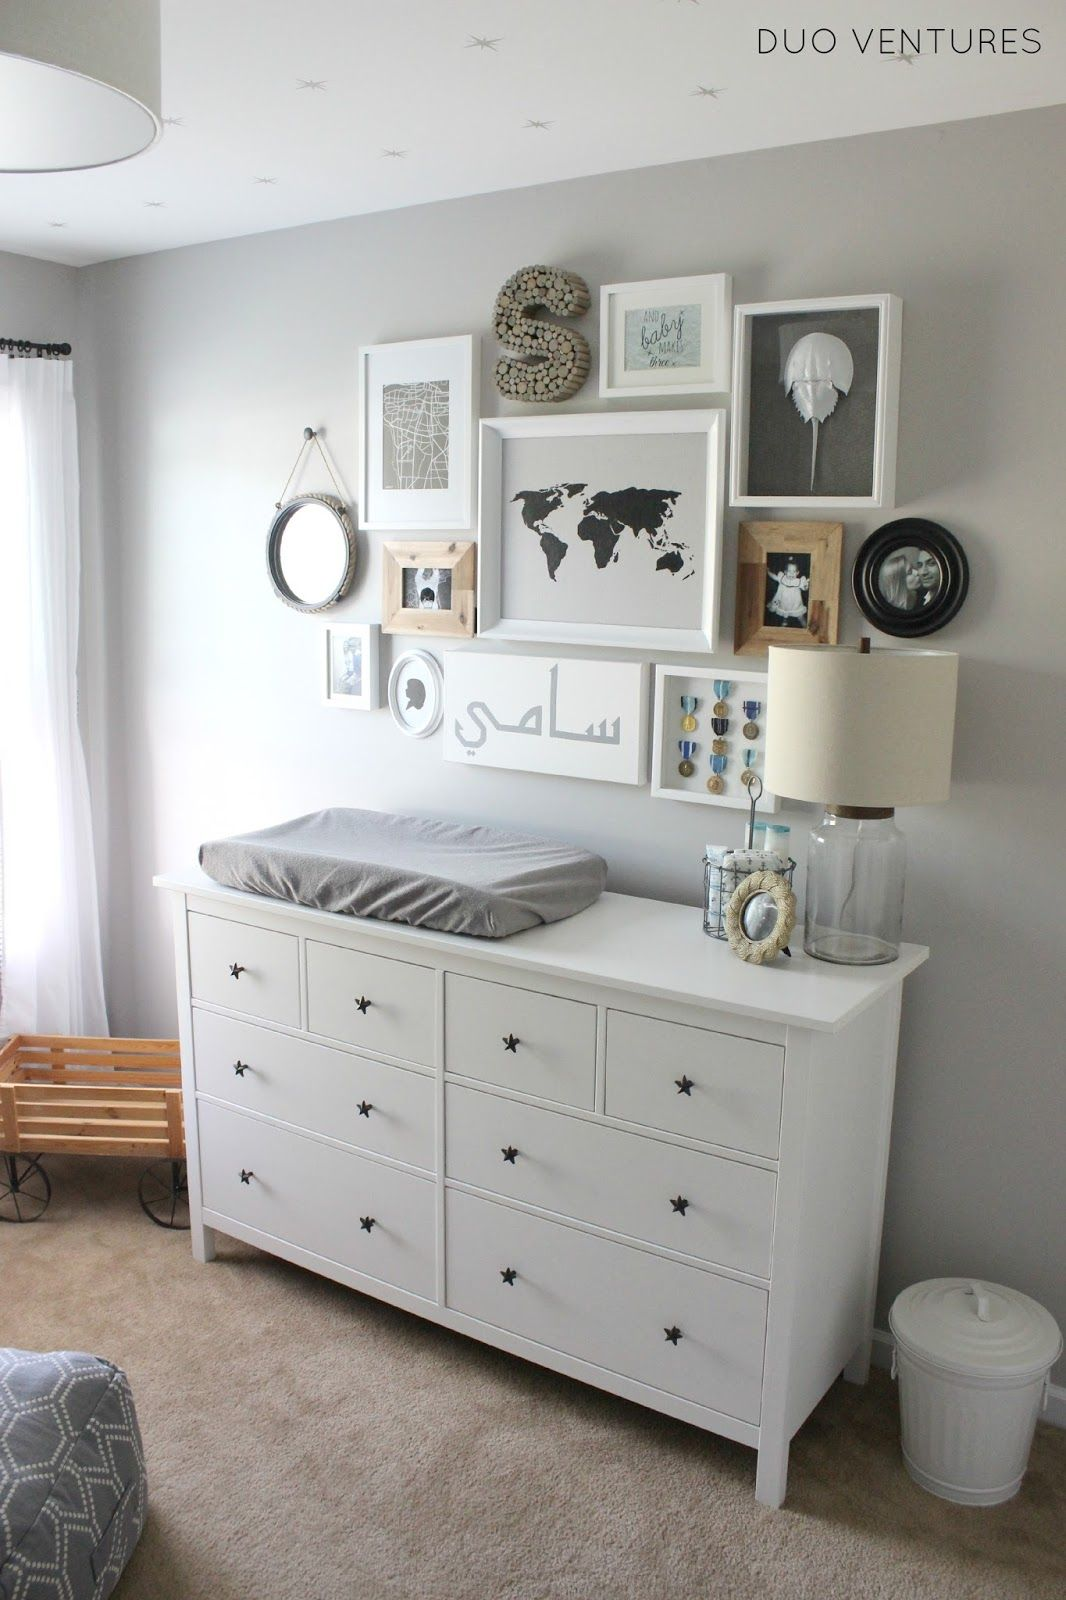 Duo Ventures The Nursery Custom Ikea Hemnes Dresser With Images